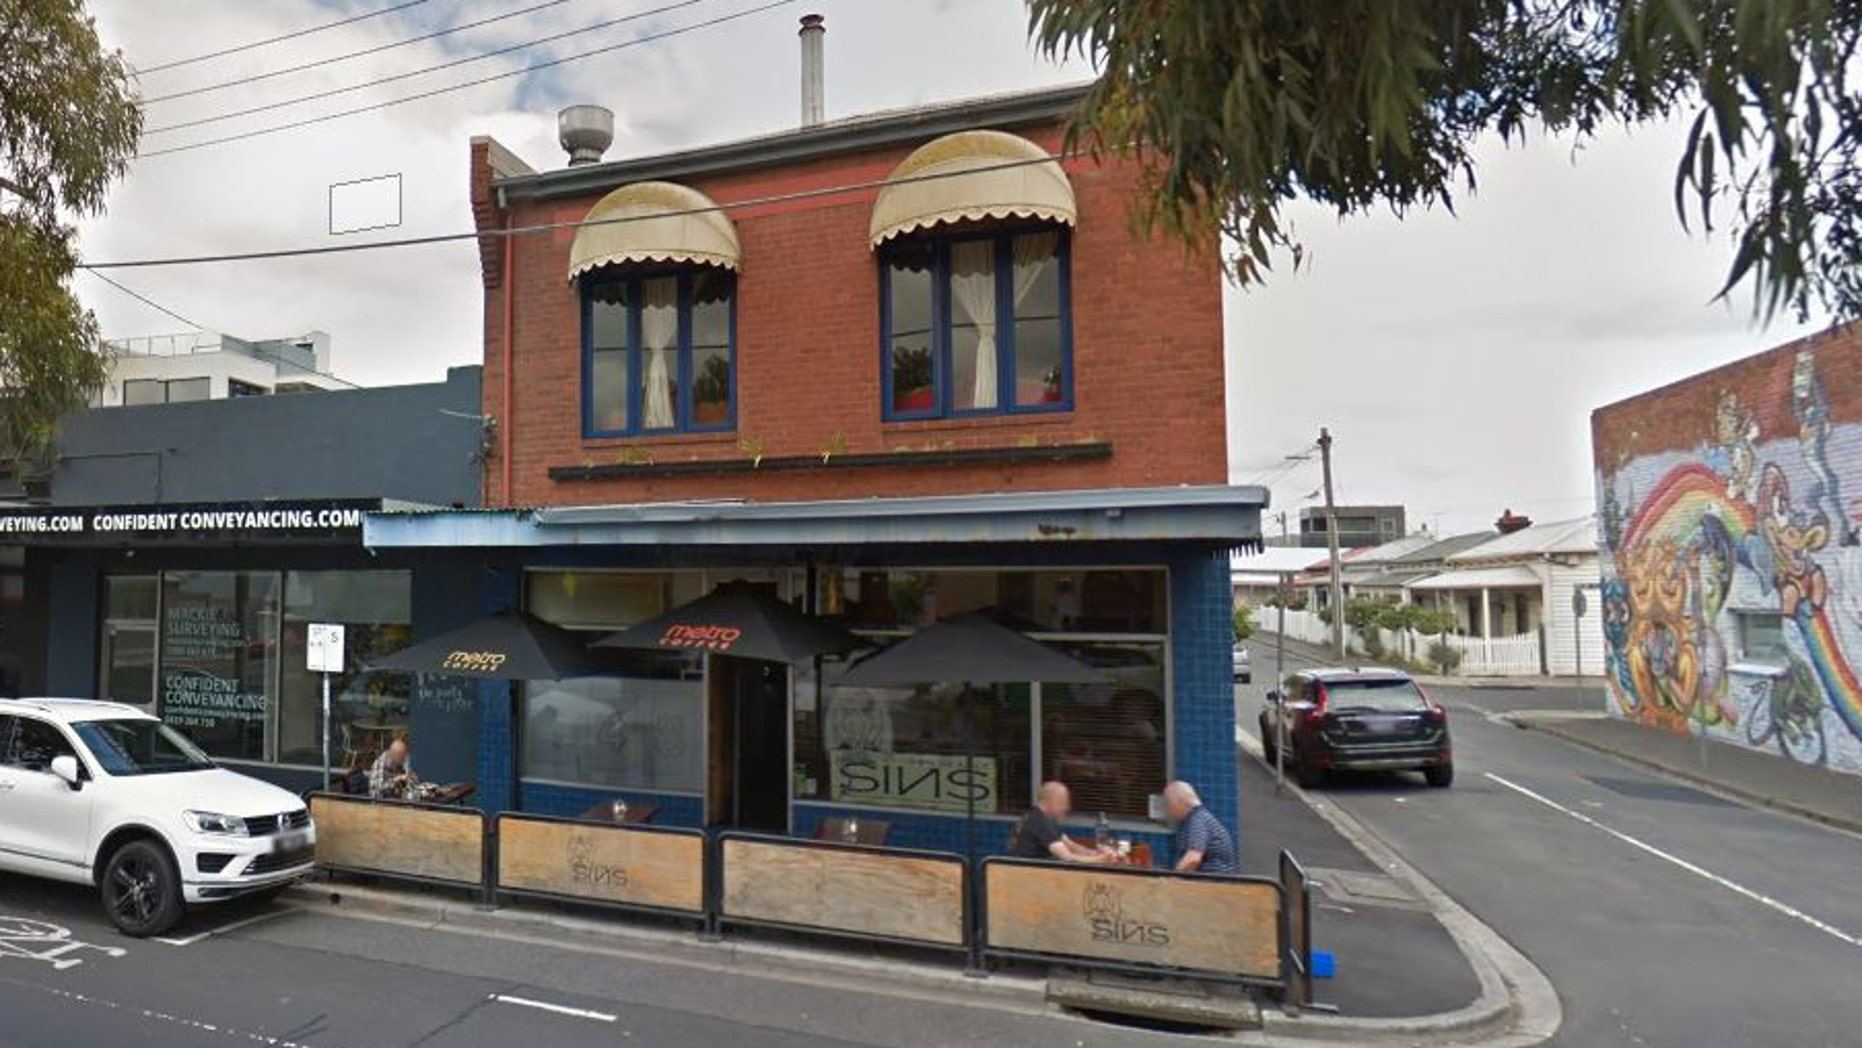 Seddon Deadly Sins cafe is known for writing puns and jokes on a sign outside the store and uploading them to Facebook.